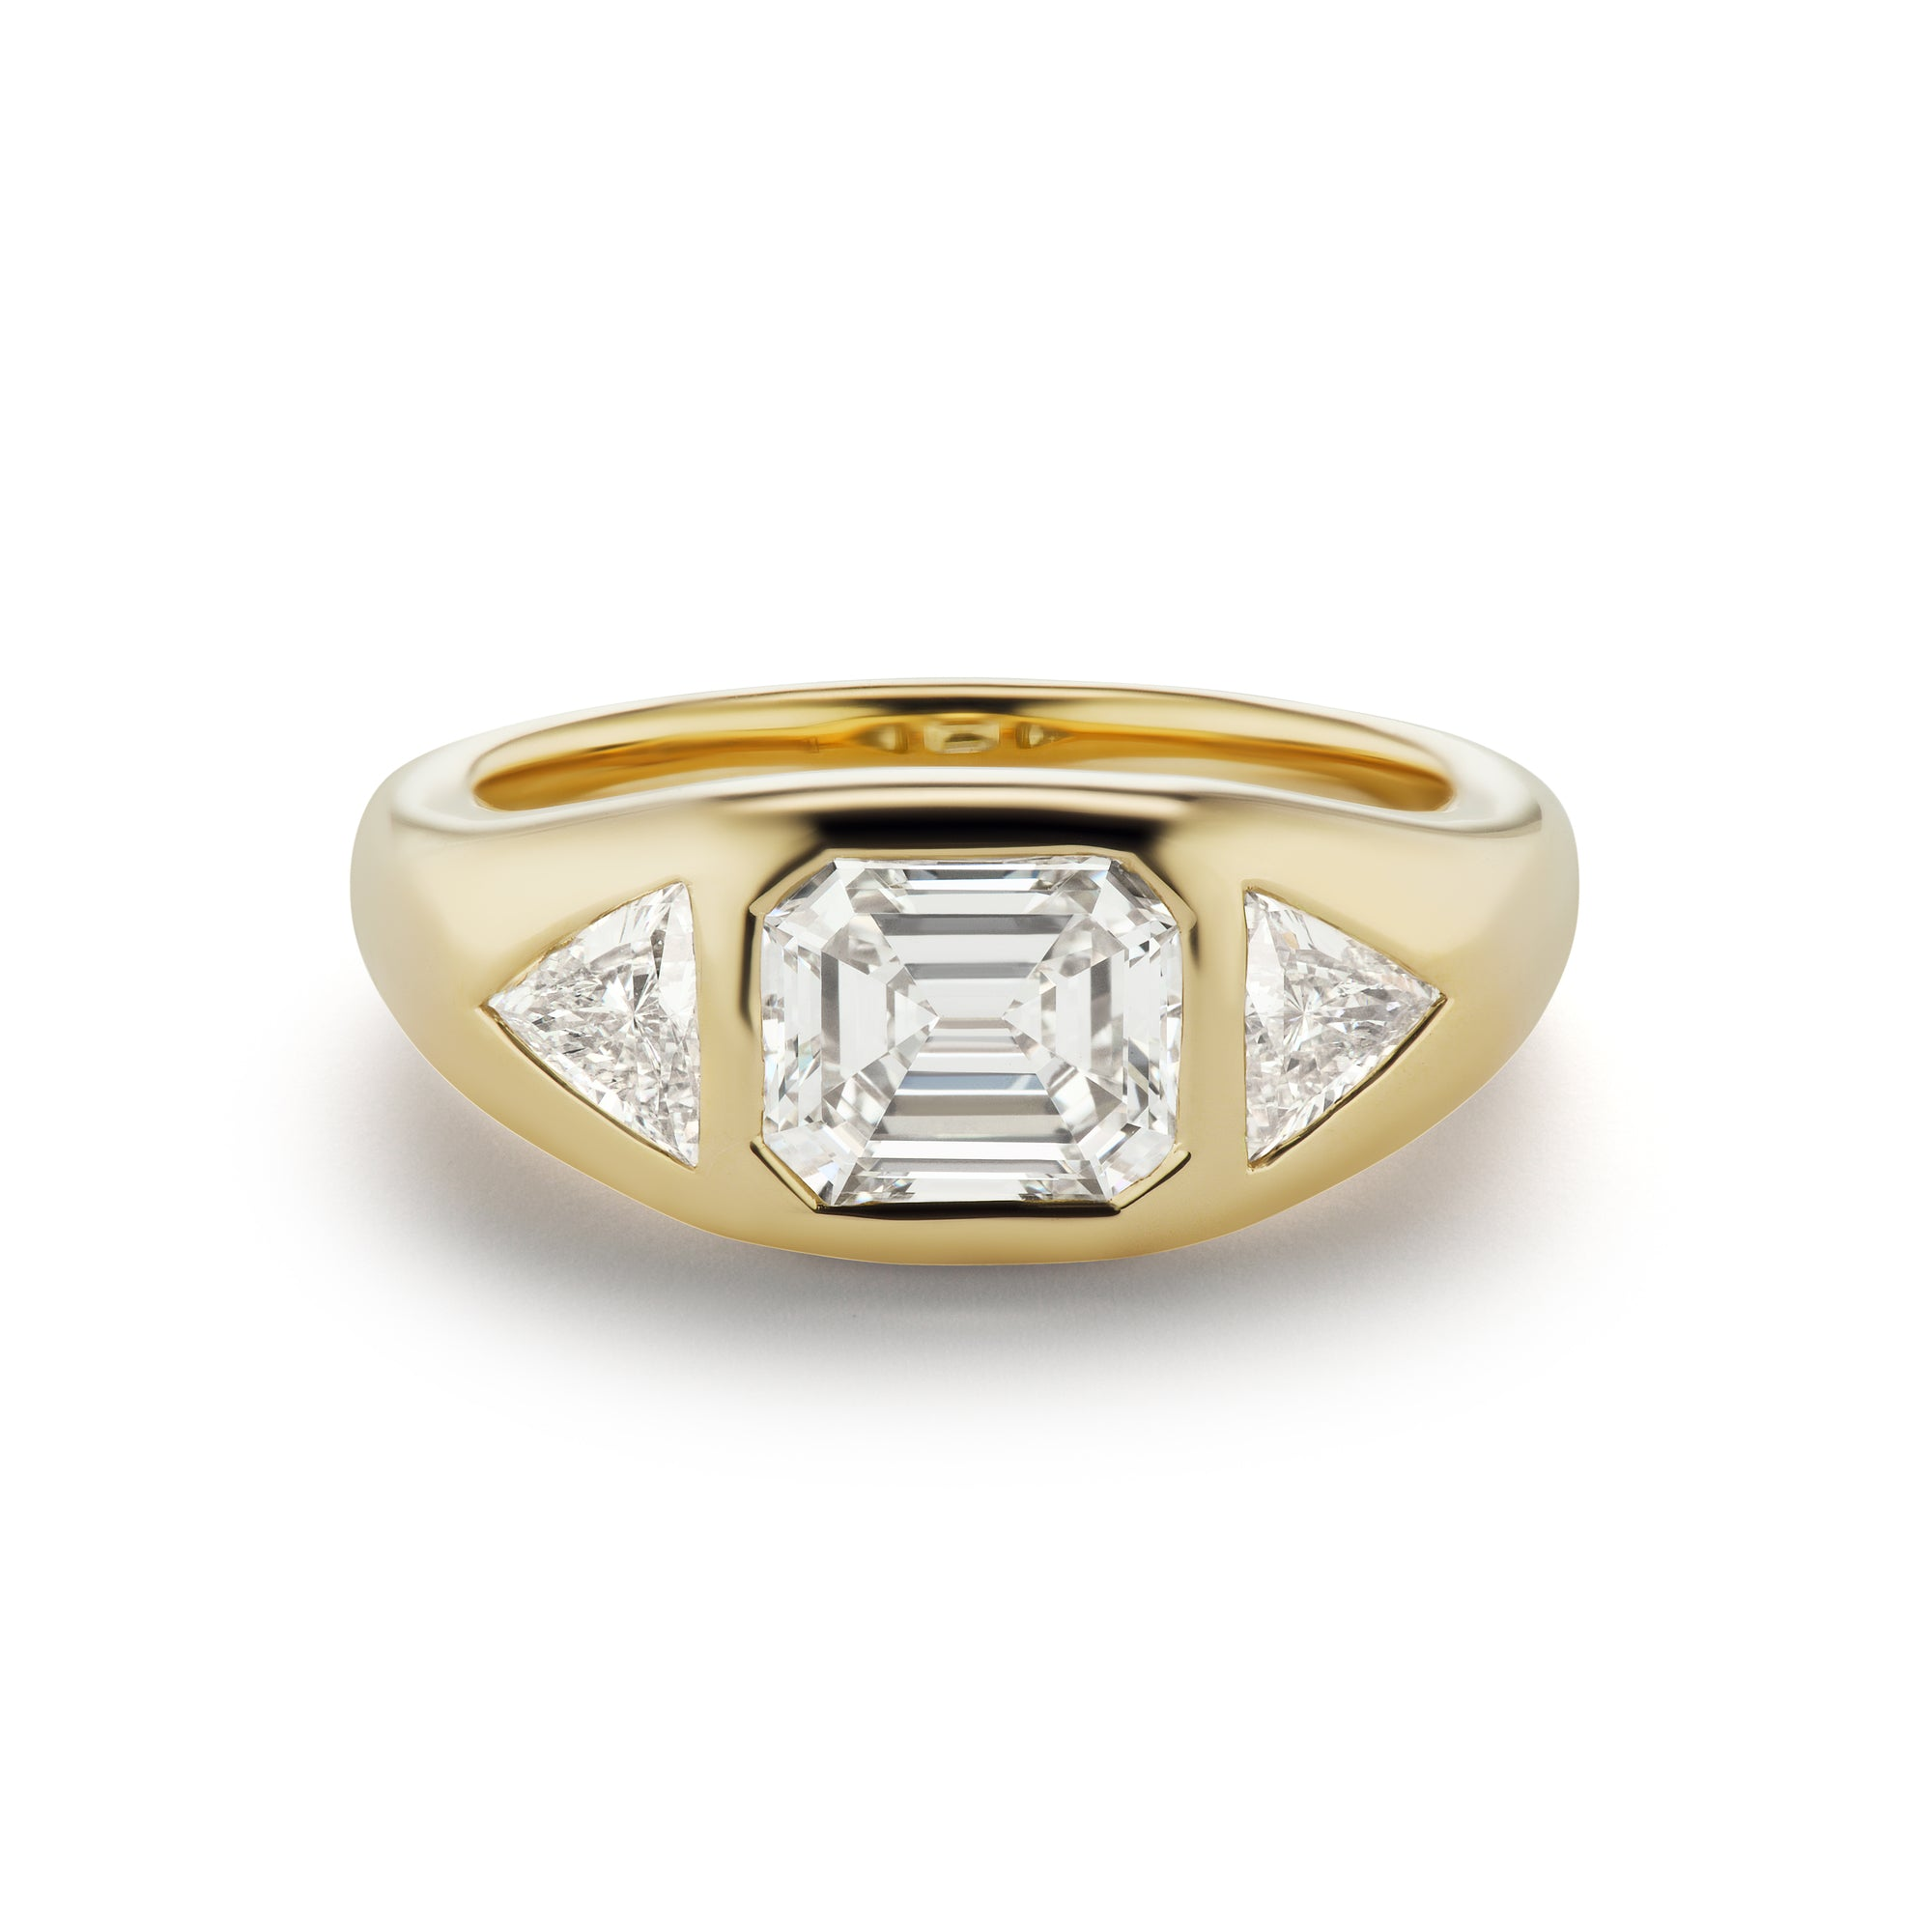 One-of-a-Kind Emerald-Cut Diamond Gypsy Ring